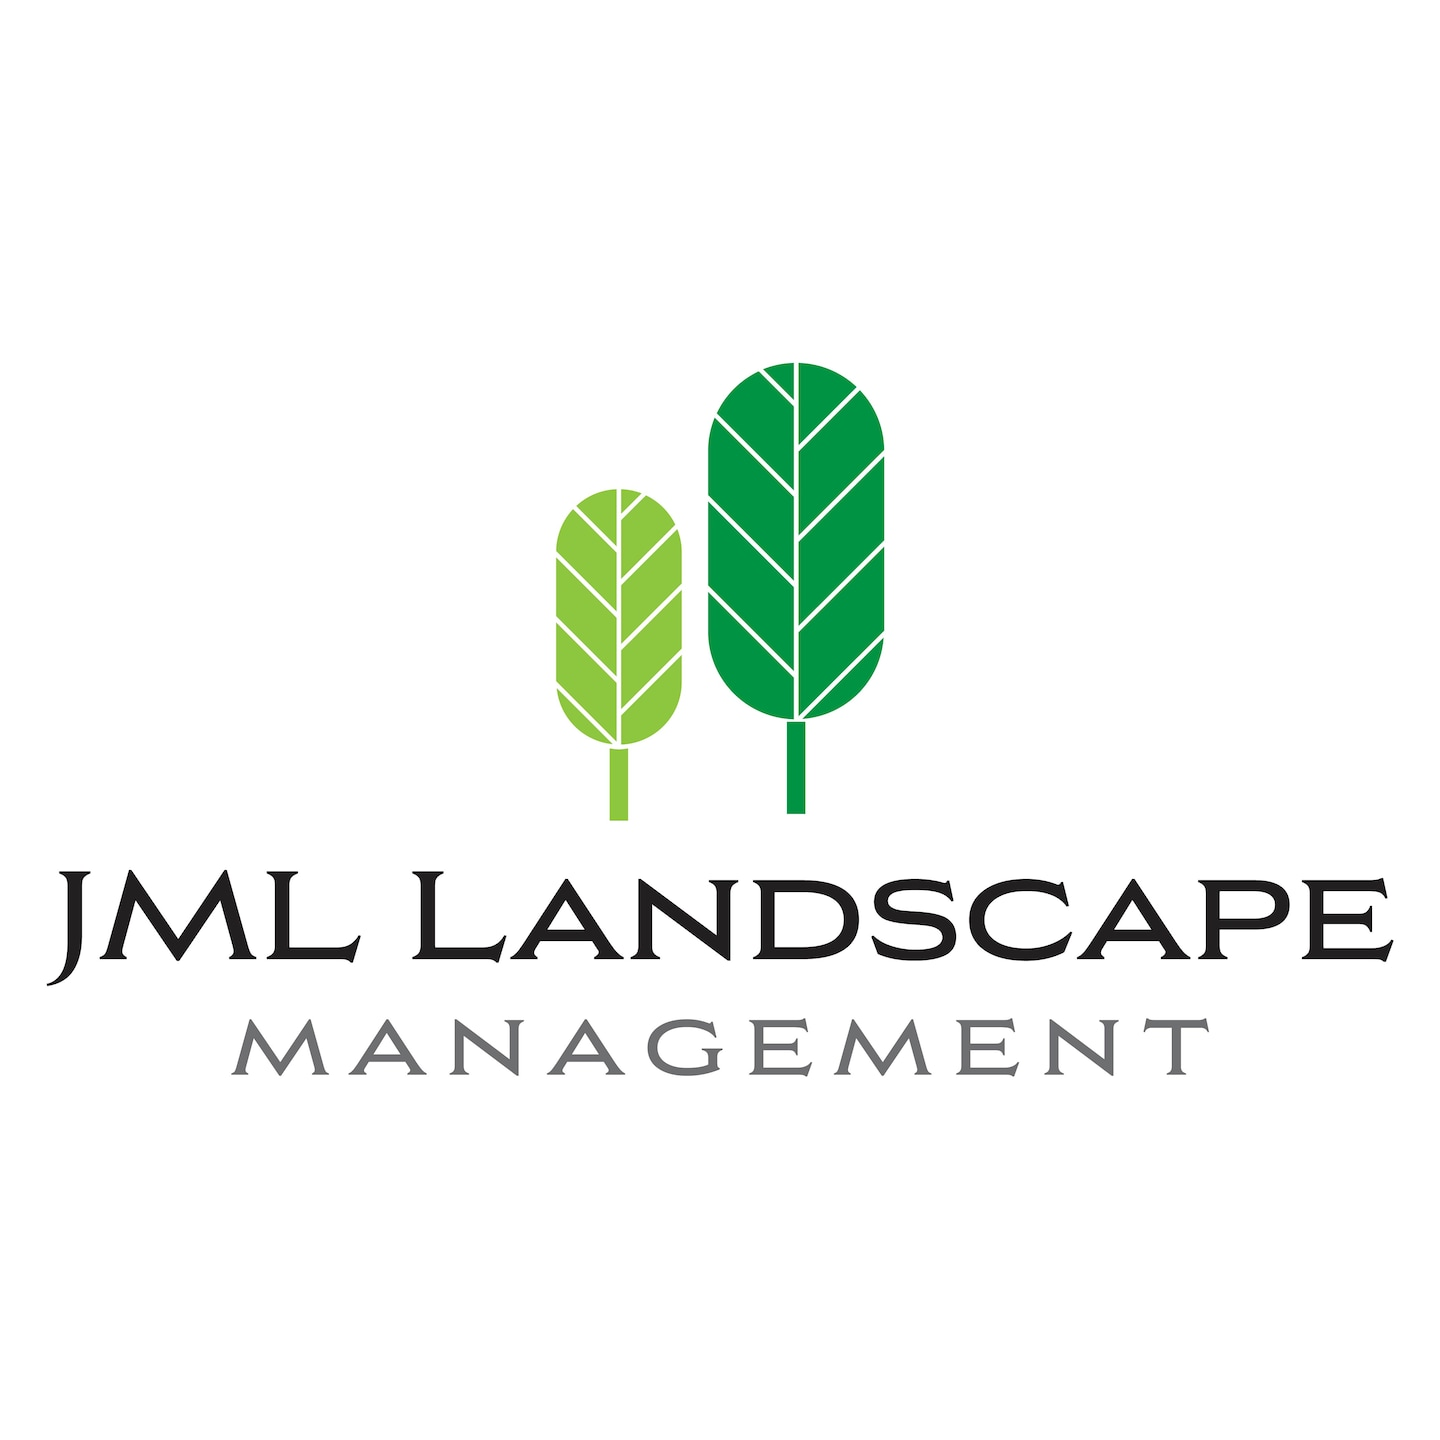 JML Landscape Management Inc